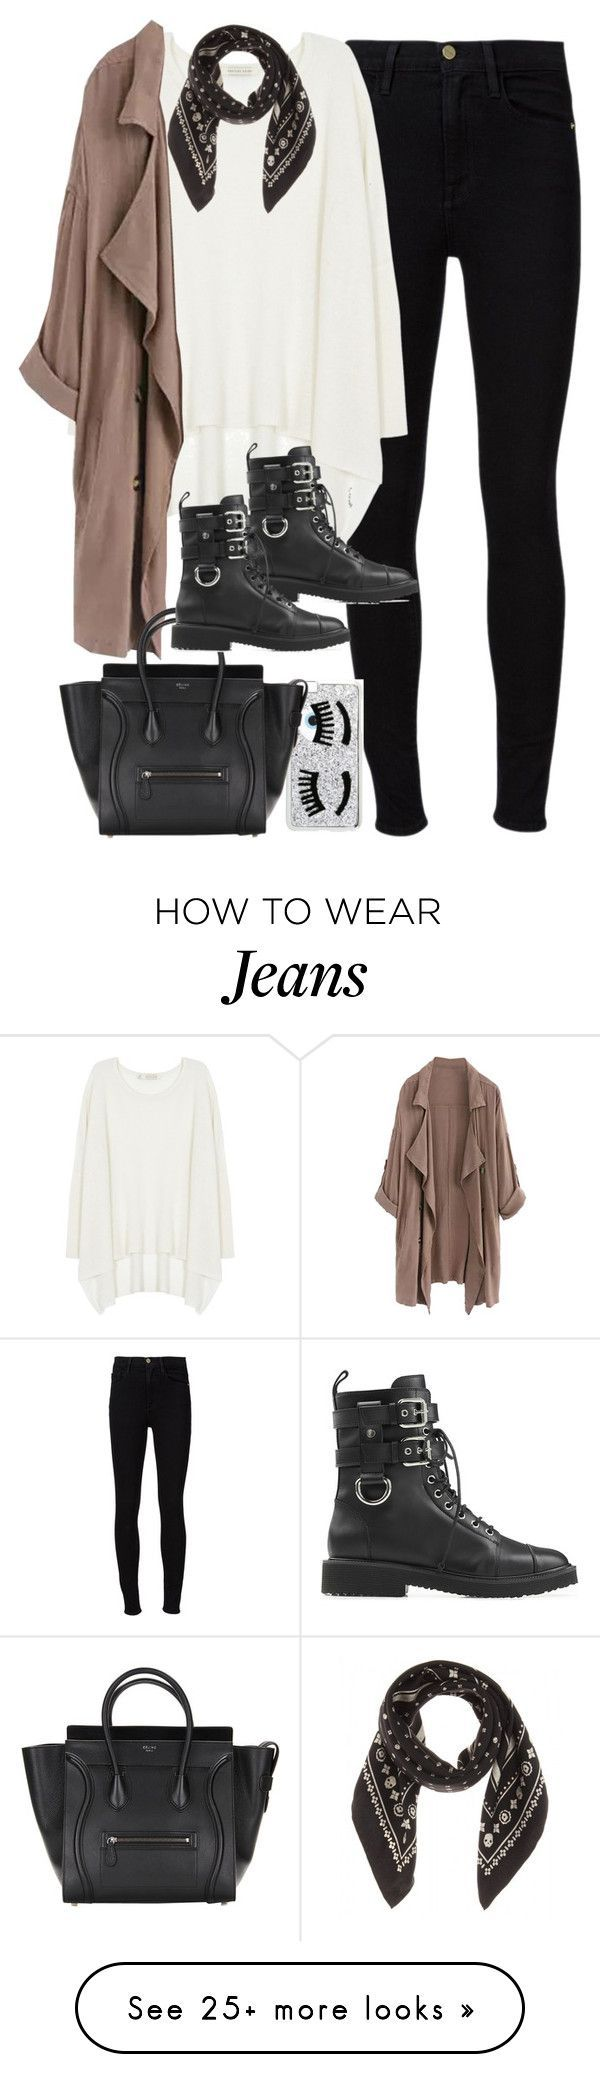 """Outfit for autumn"" by ferned on Polyvore featuring Frame Denim, Century Seven, WithChic, Chiara Ferragni, Giuseppe Zanotti and Coach"